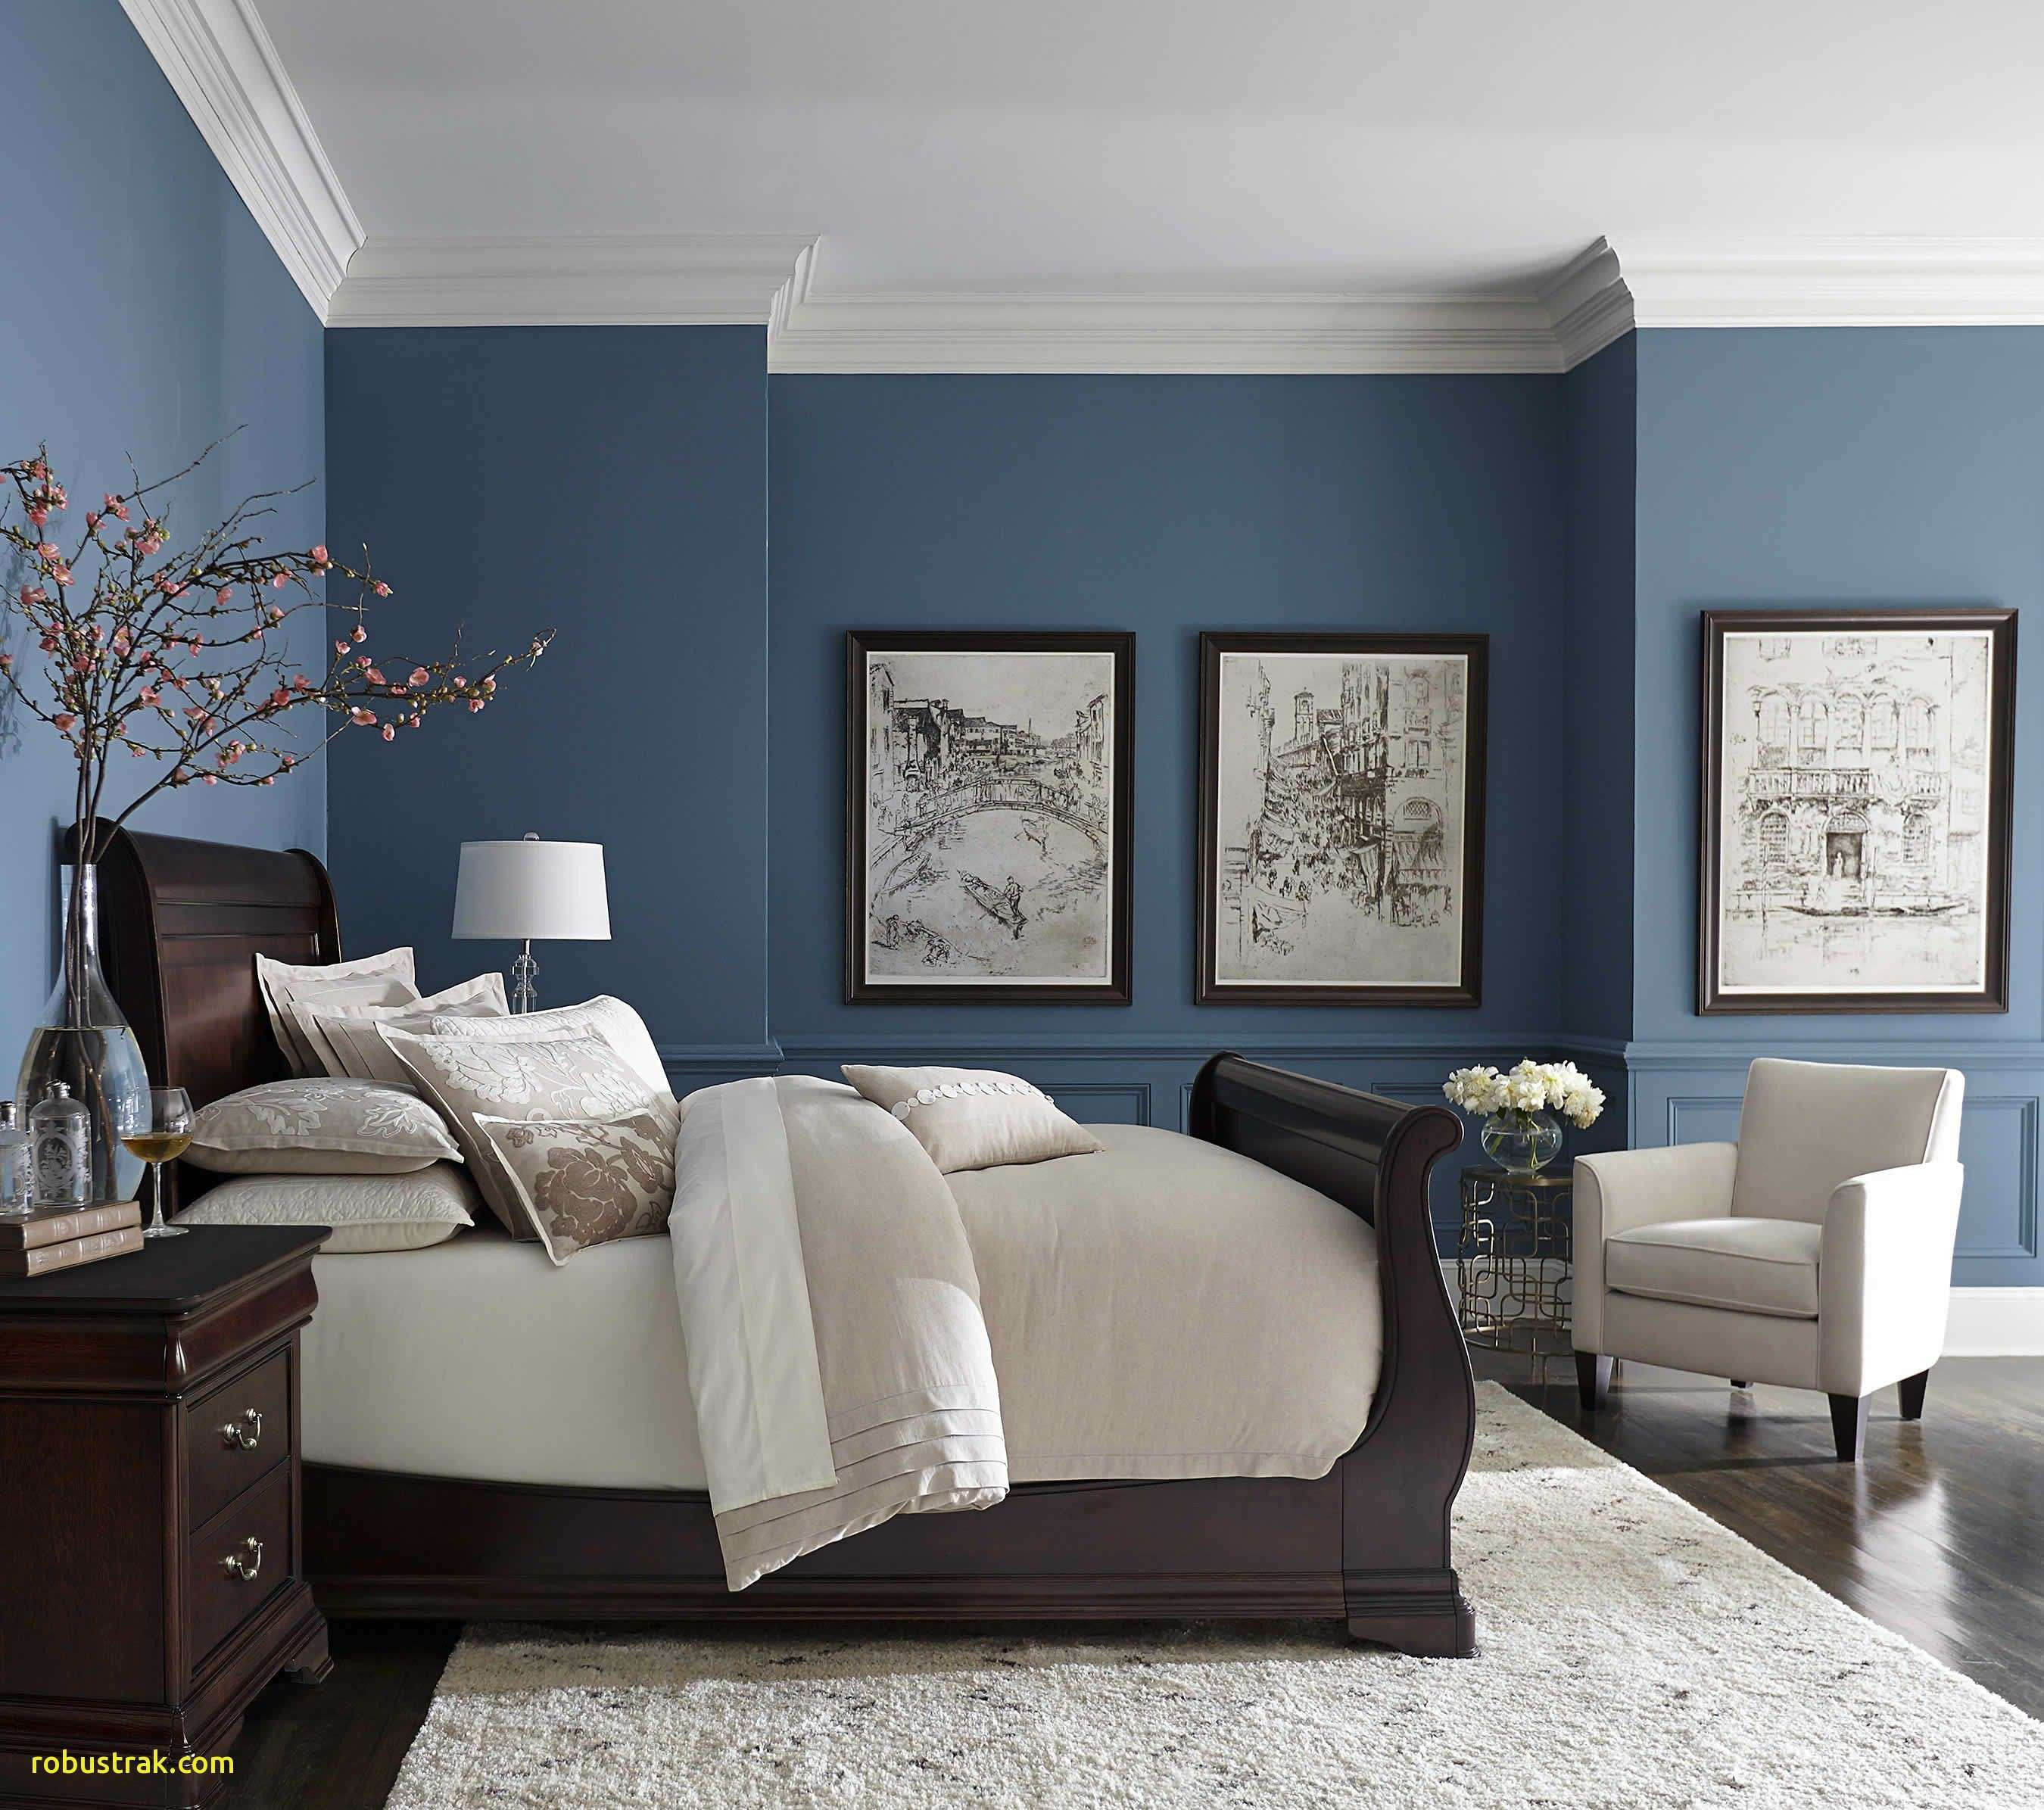 Black And Blue Living Room Ideas In 2020 Blue Bedroom Co